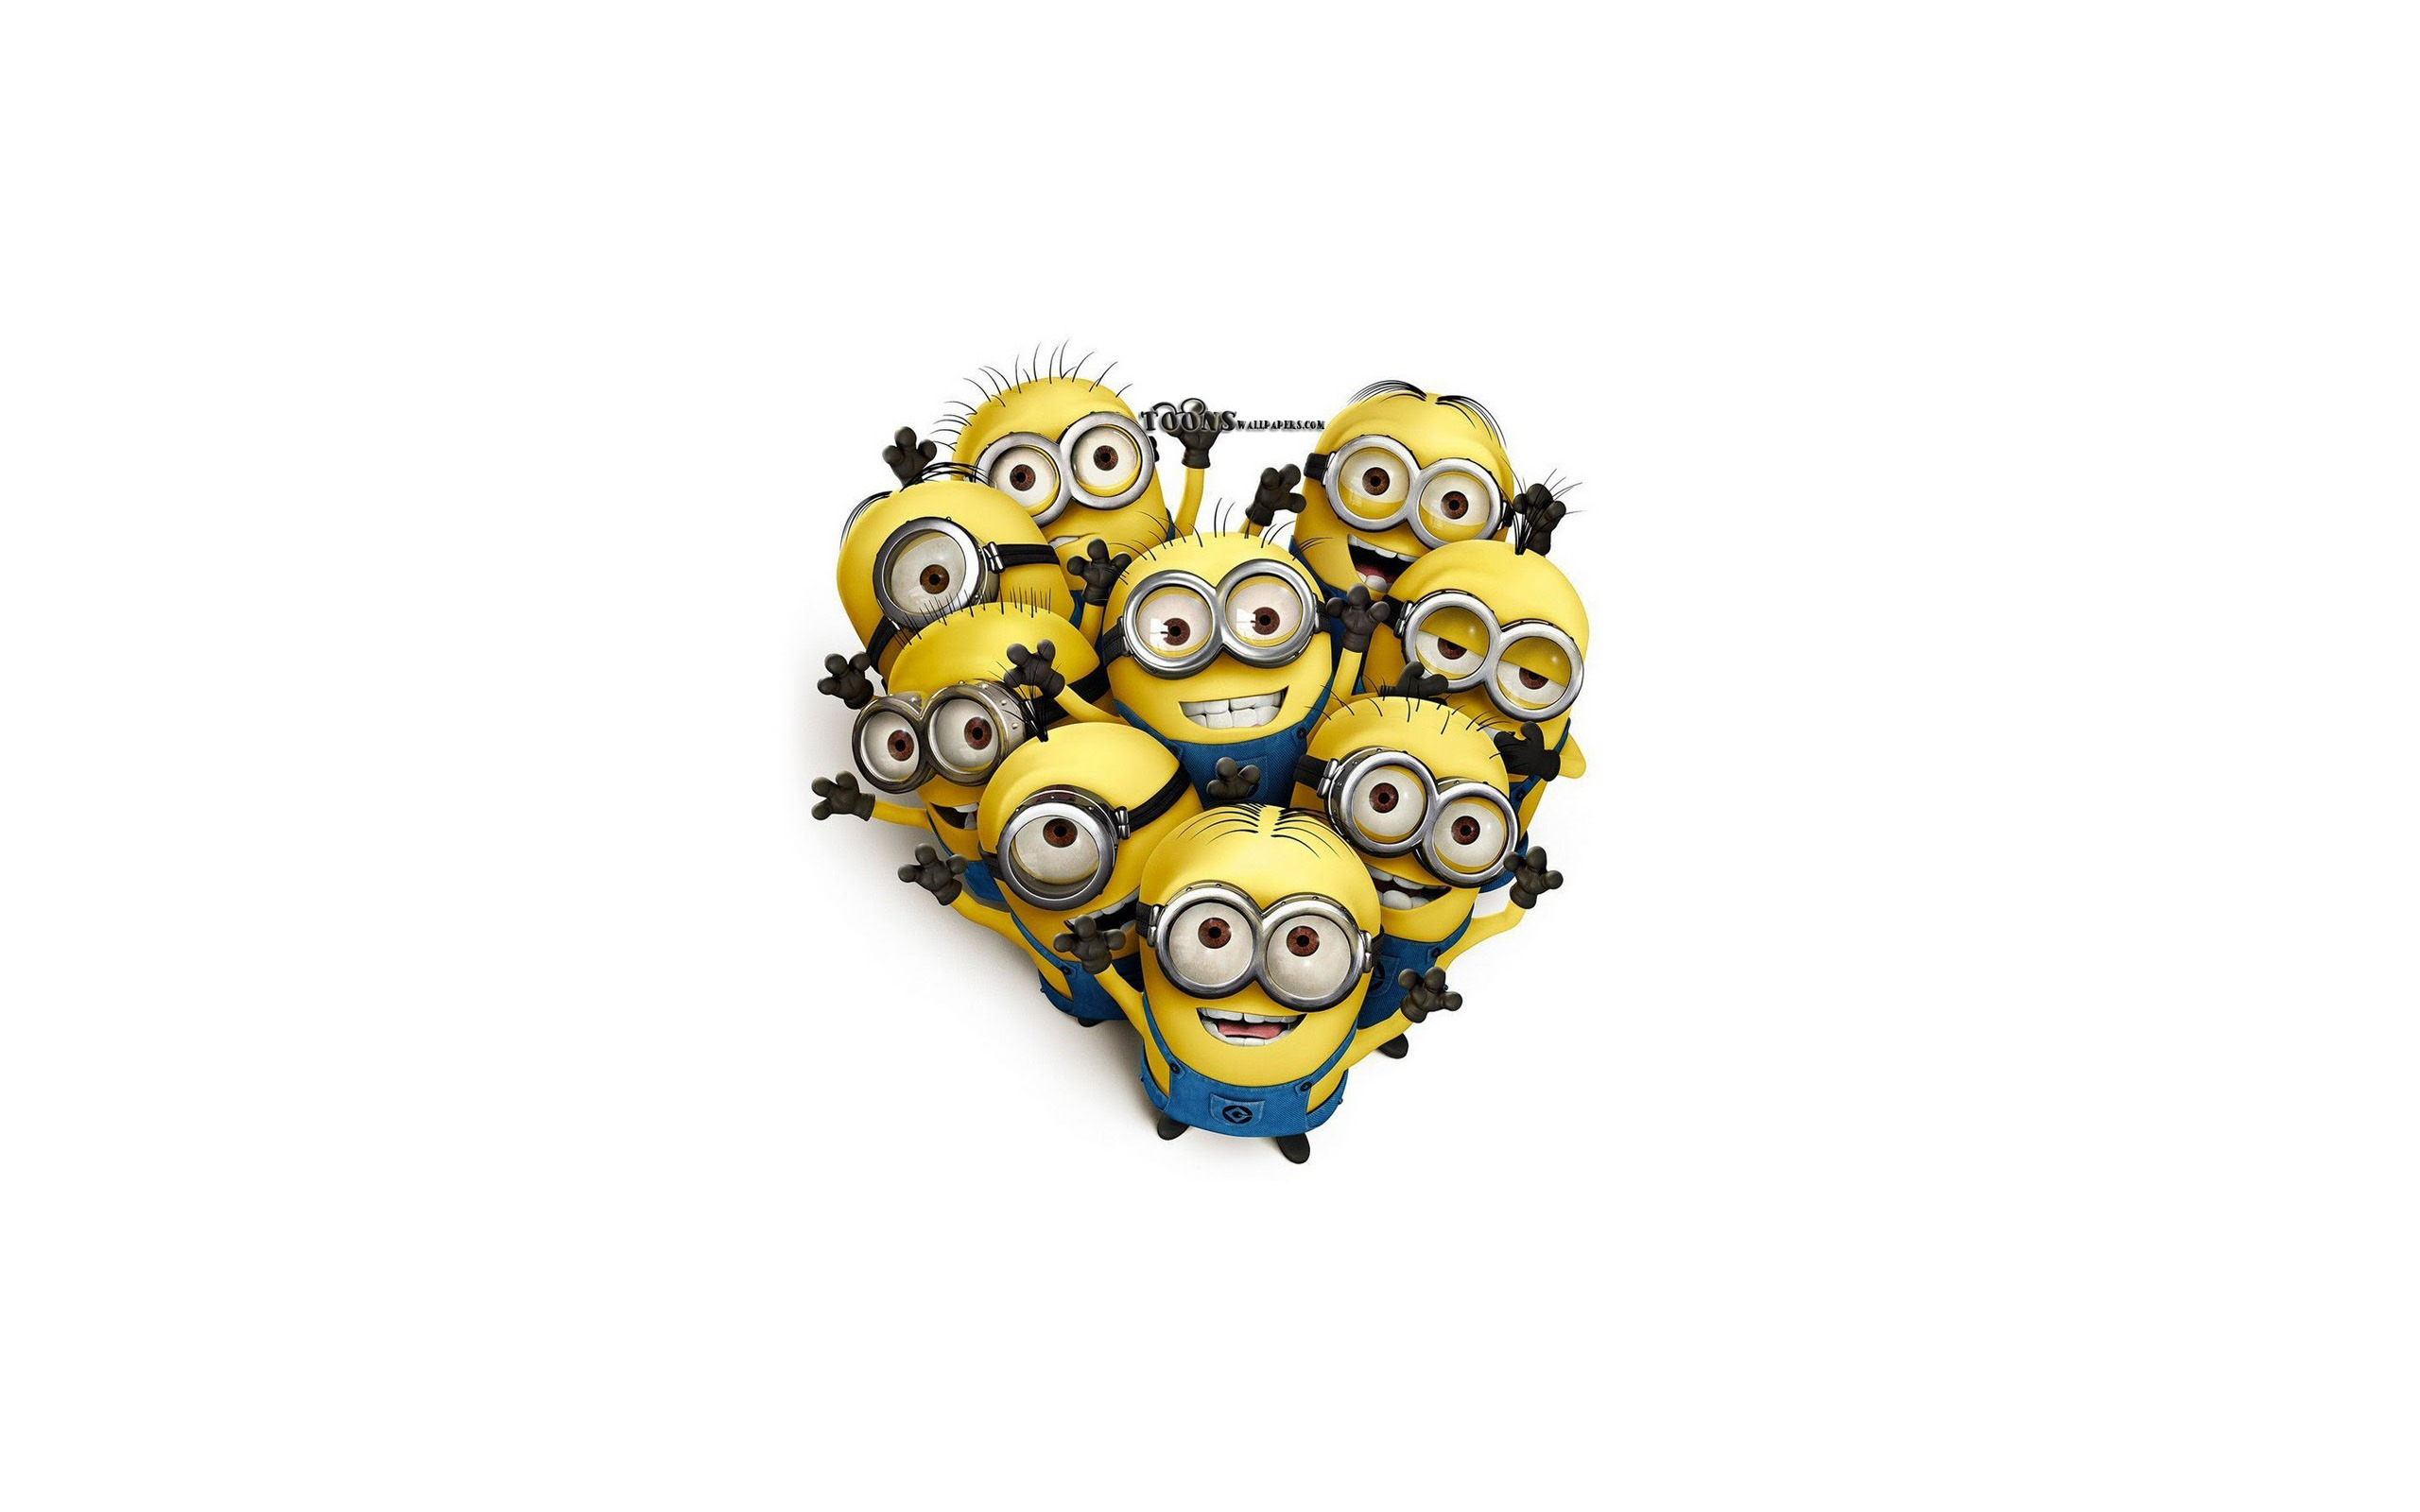 Paradise Minions Despicable Me 2 Wide   viewallpap  HD Wallpaper